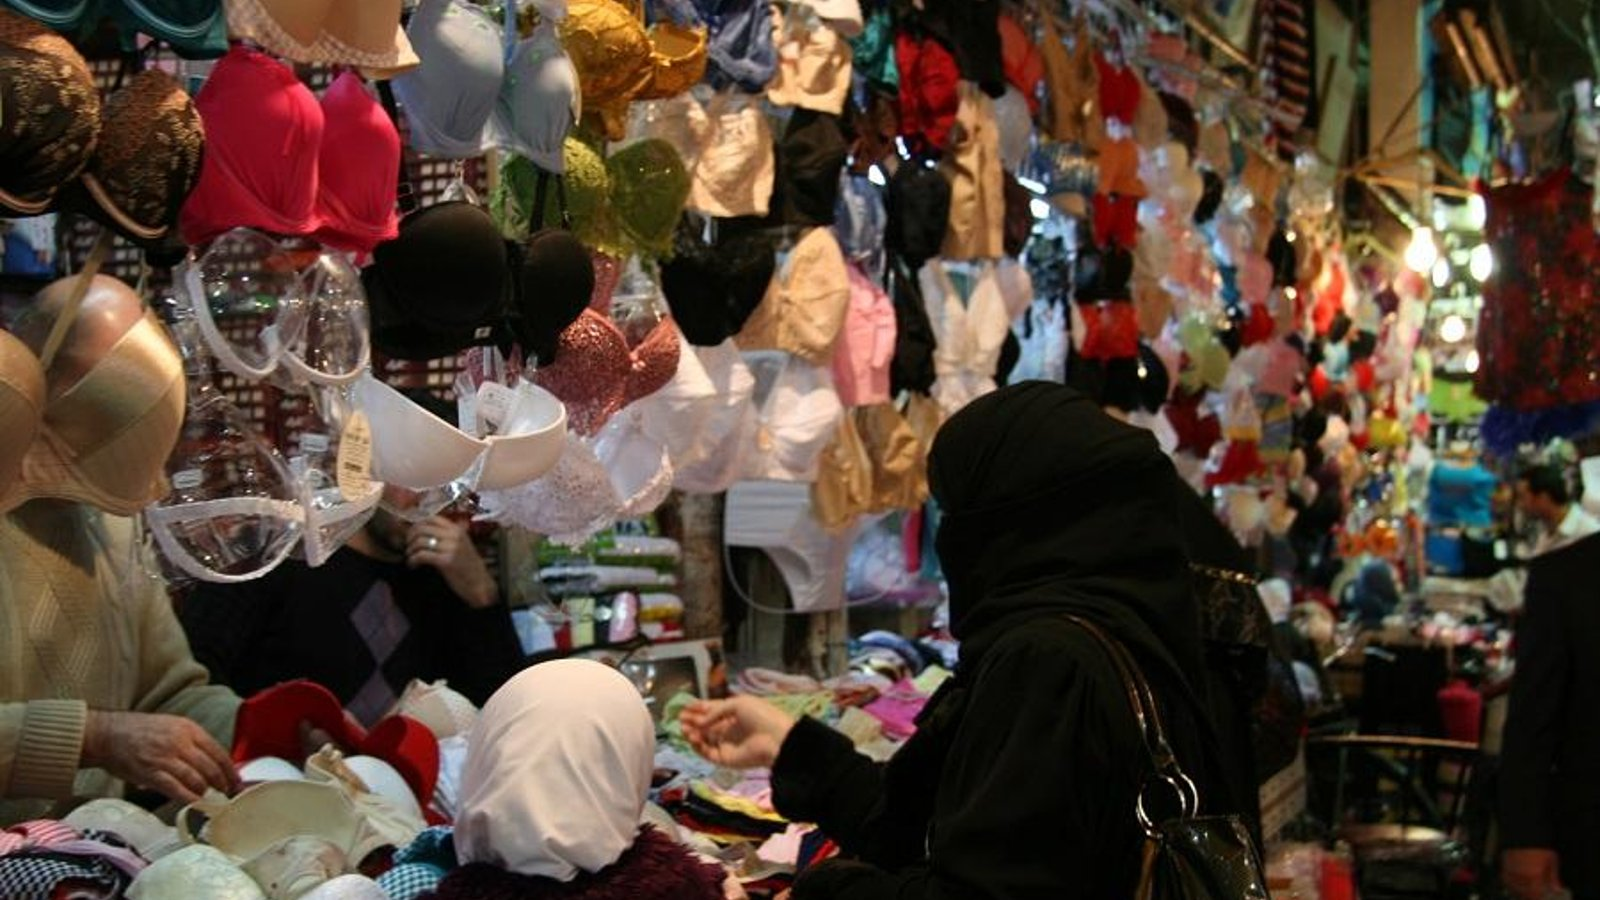 Veils Uncovered - The Sexual World of Veiled Women